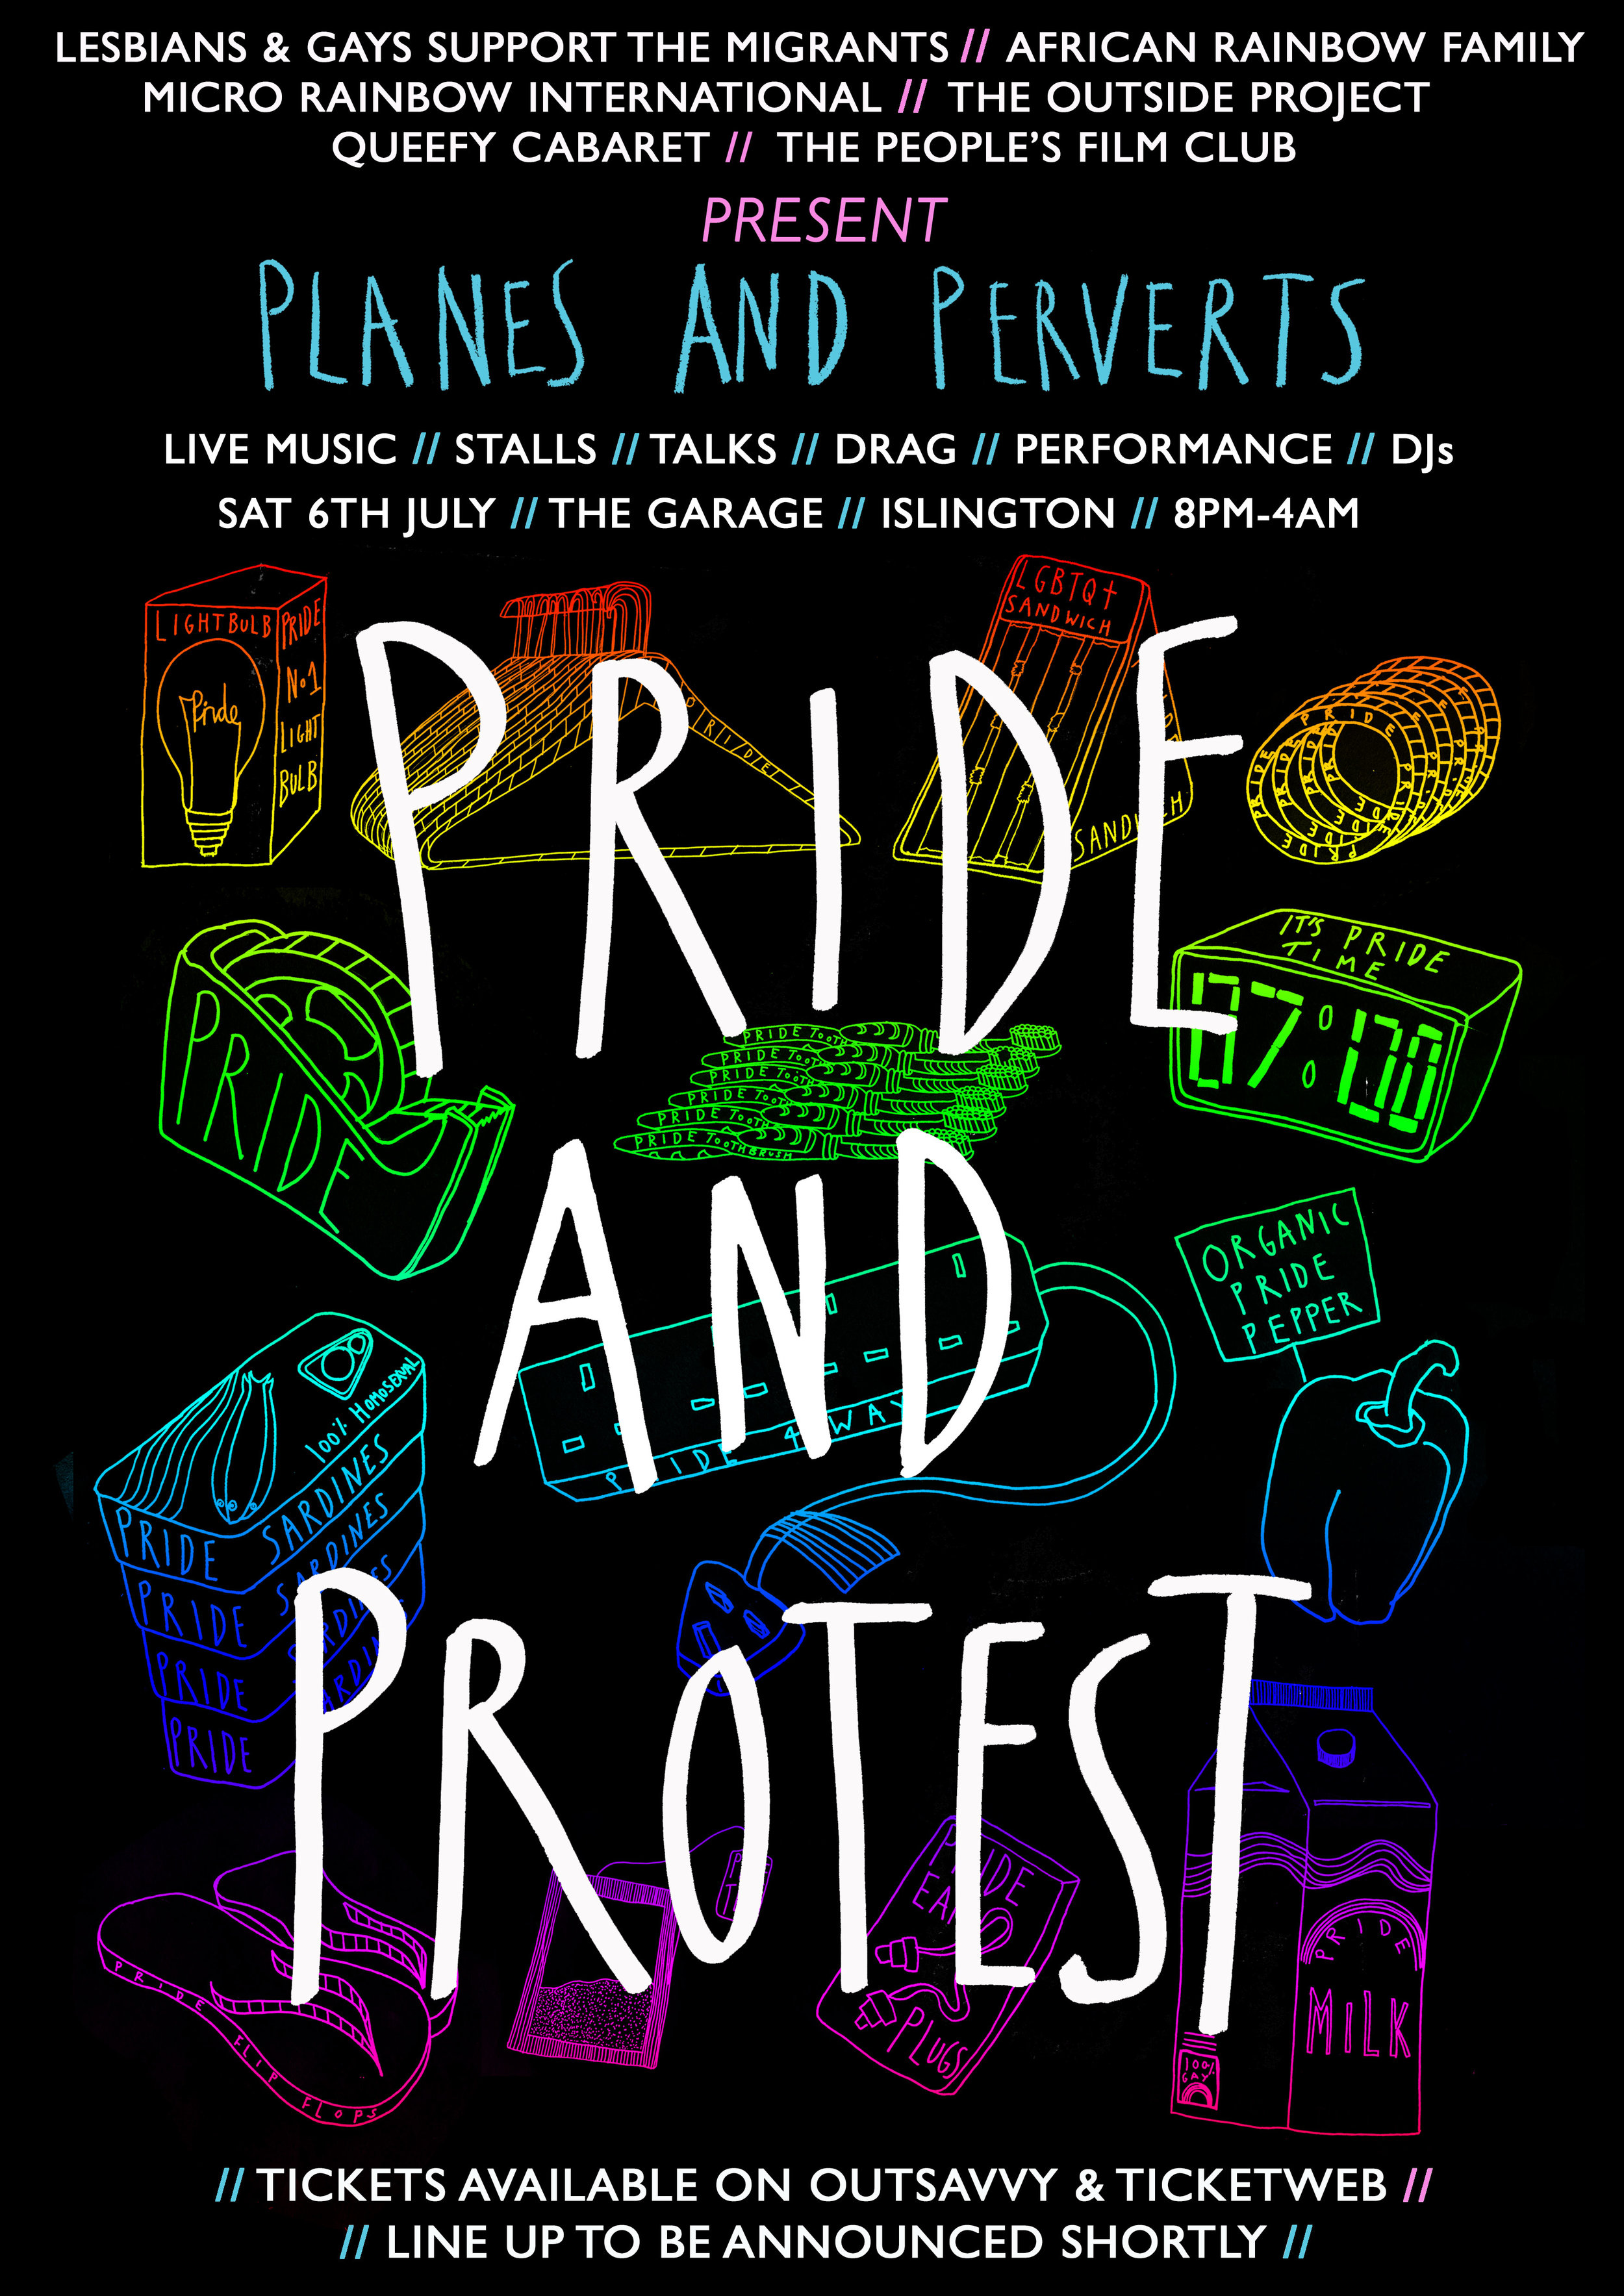 PRIDE-AND-PROTEST-Web-Res.jpg